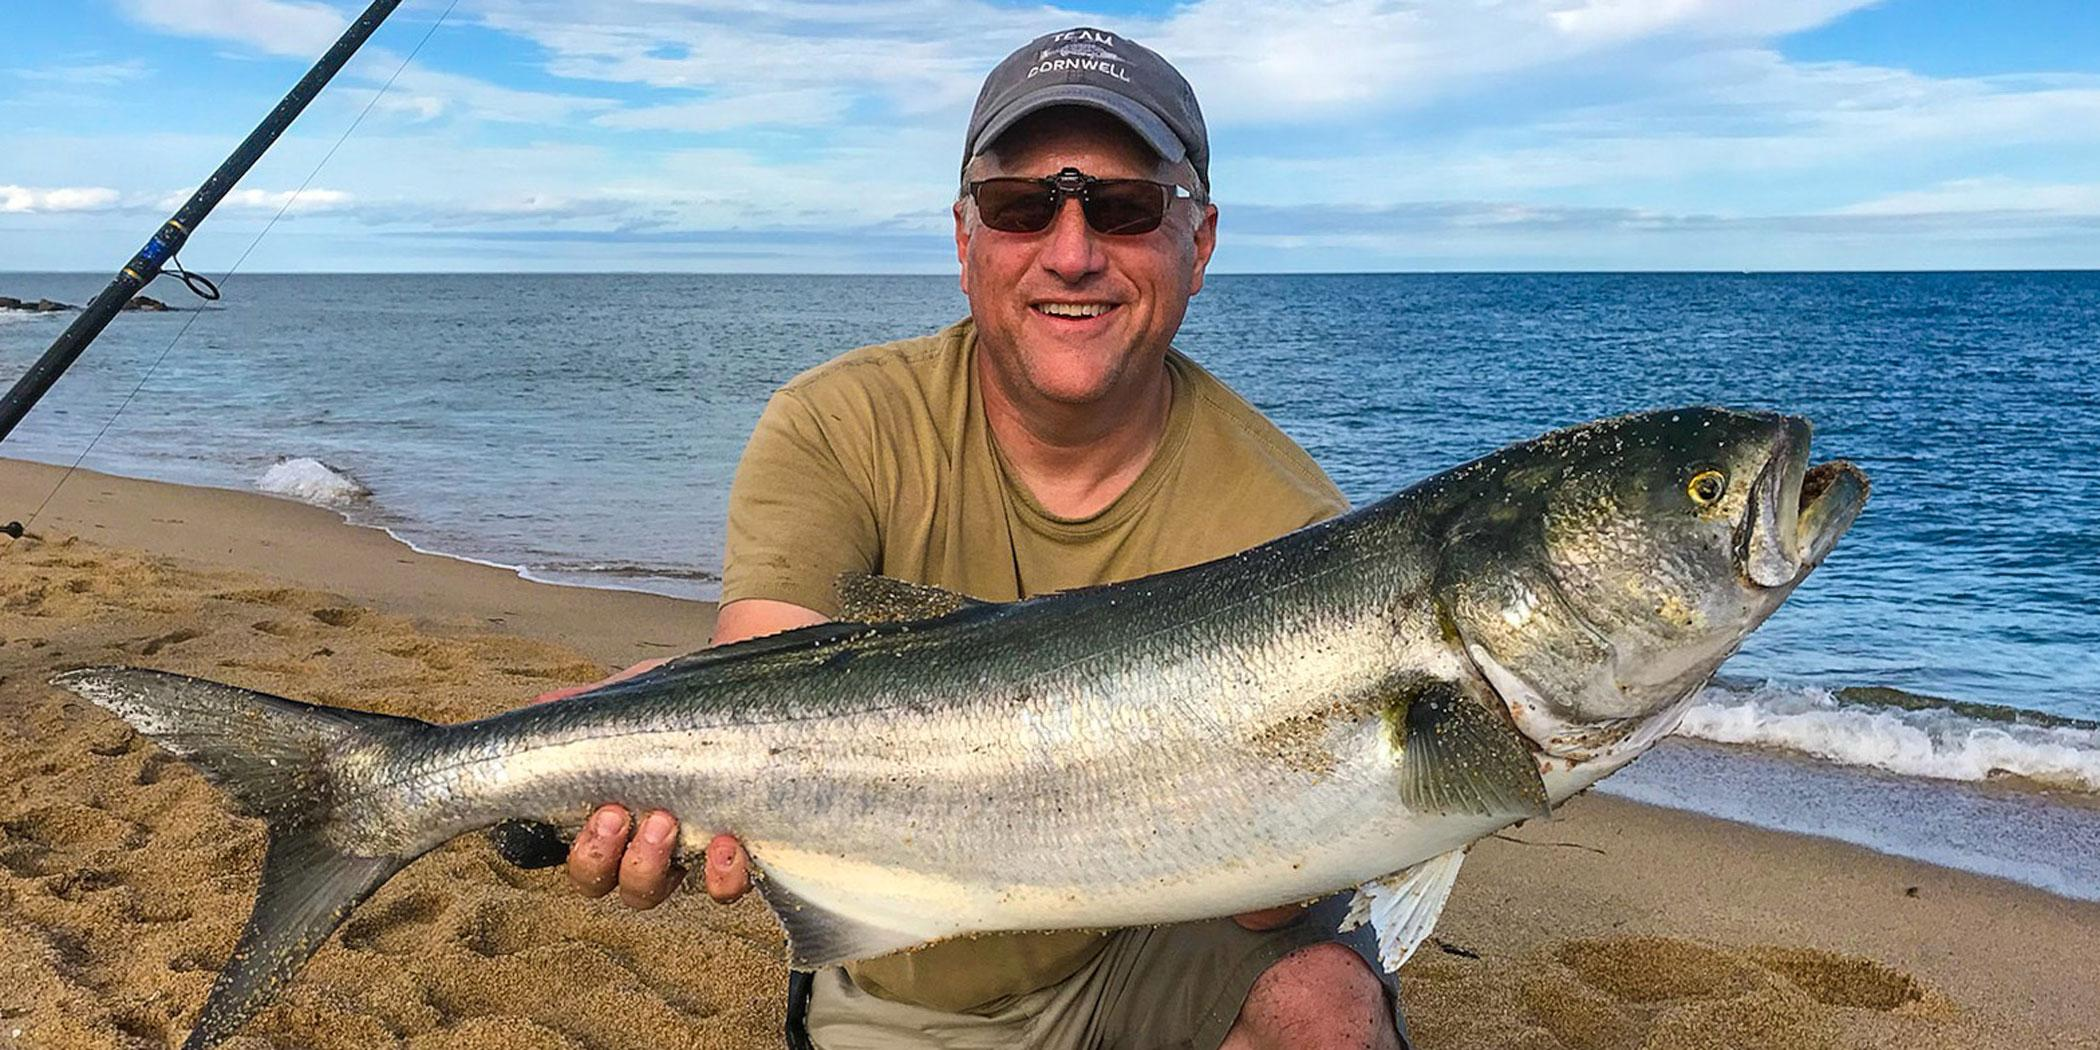 Fisherman Jim Cornwell shows off a big catch. PHOTO: Martha's Vineyard Striped Bass and Bluefish Derby